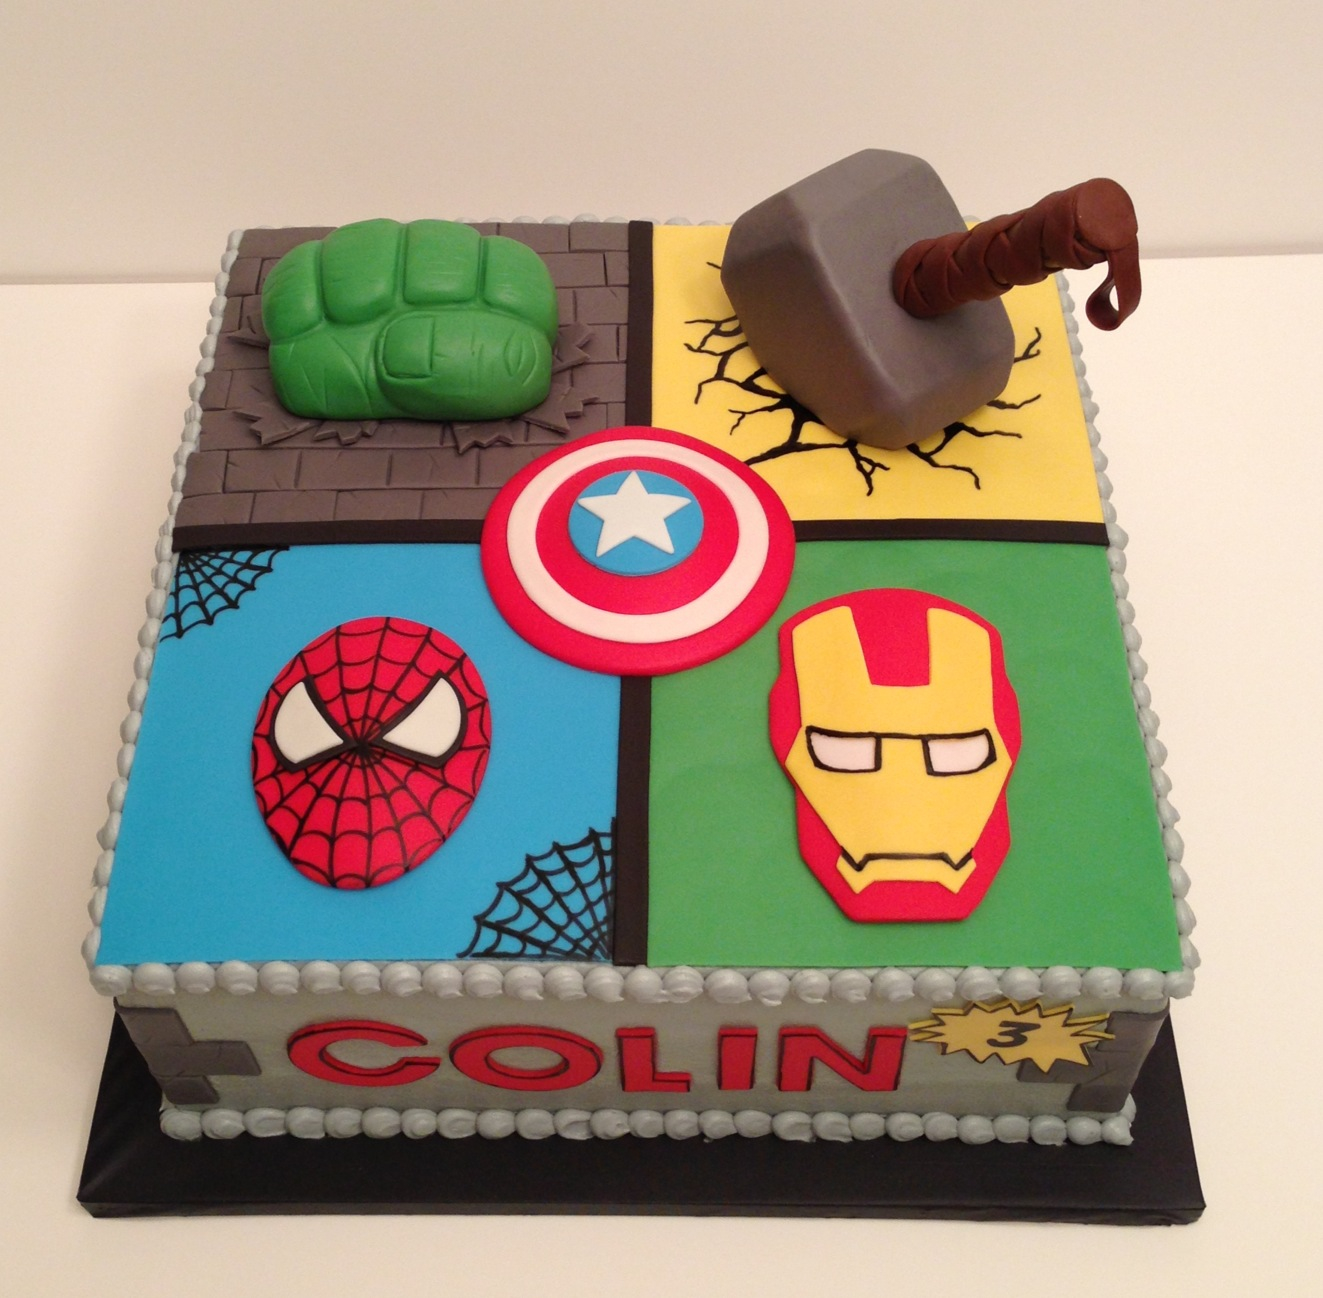 Avengers-cake-Hulk-fist-and-Thor-hammer-are-rice-cereal-treats-w-fondant-Made-by-www-KarensCustomC-wallpaper-wp3402731